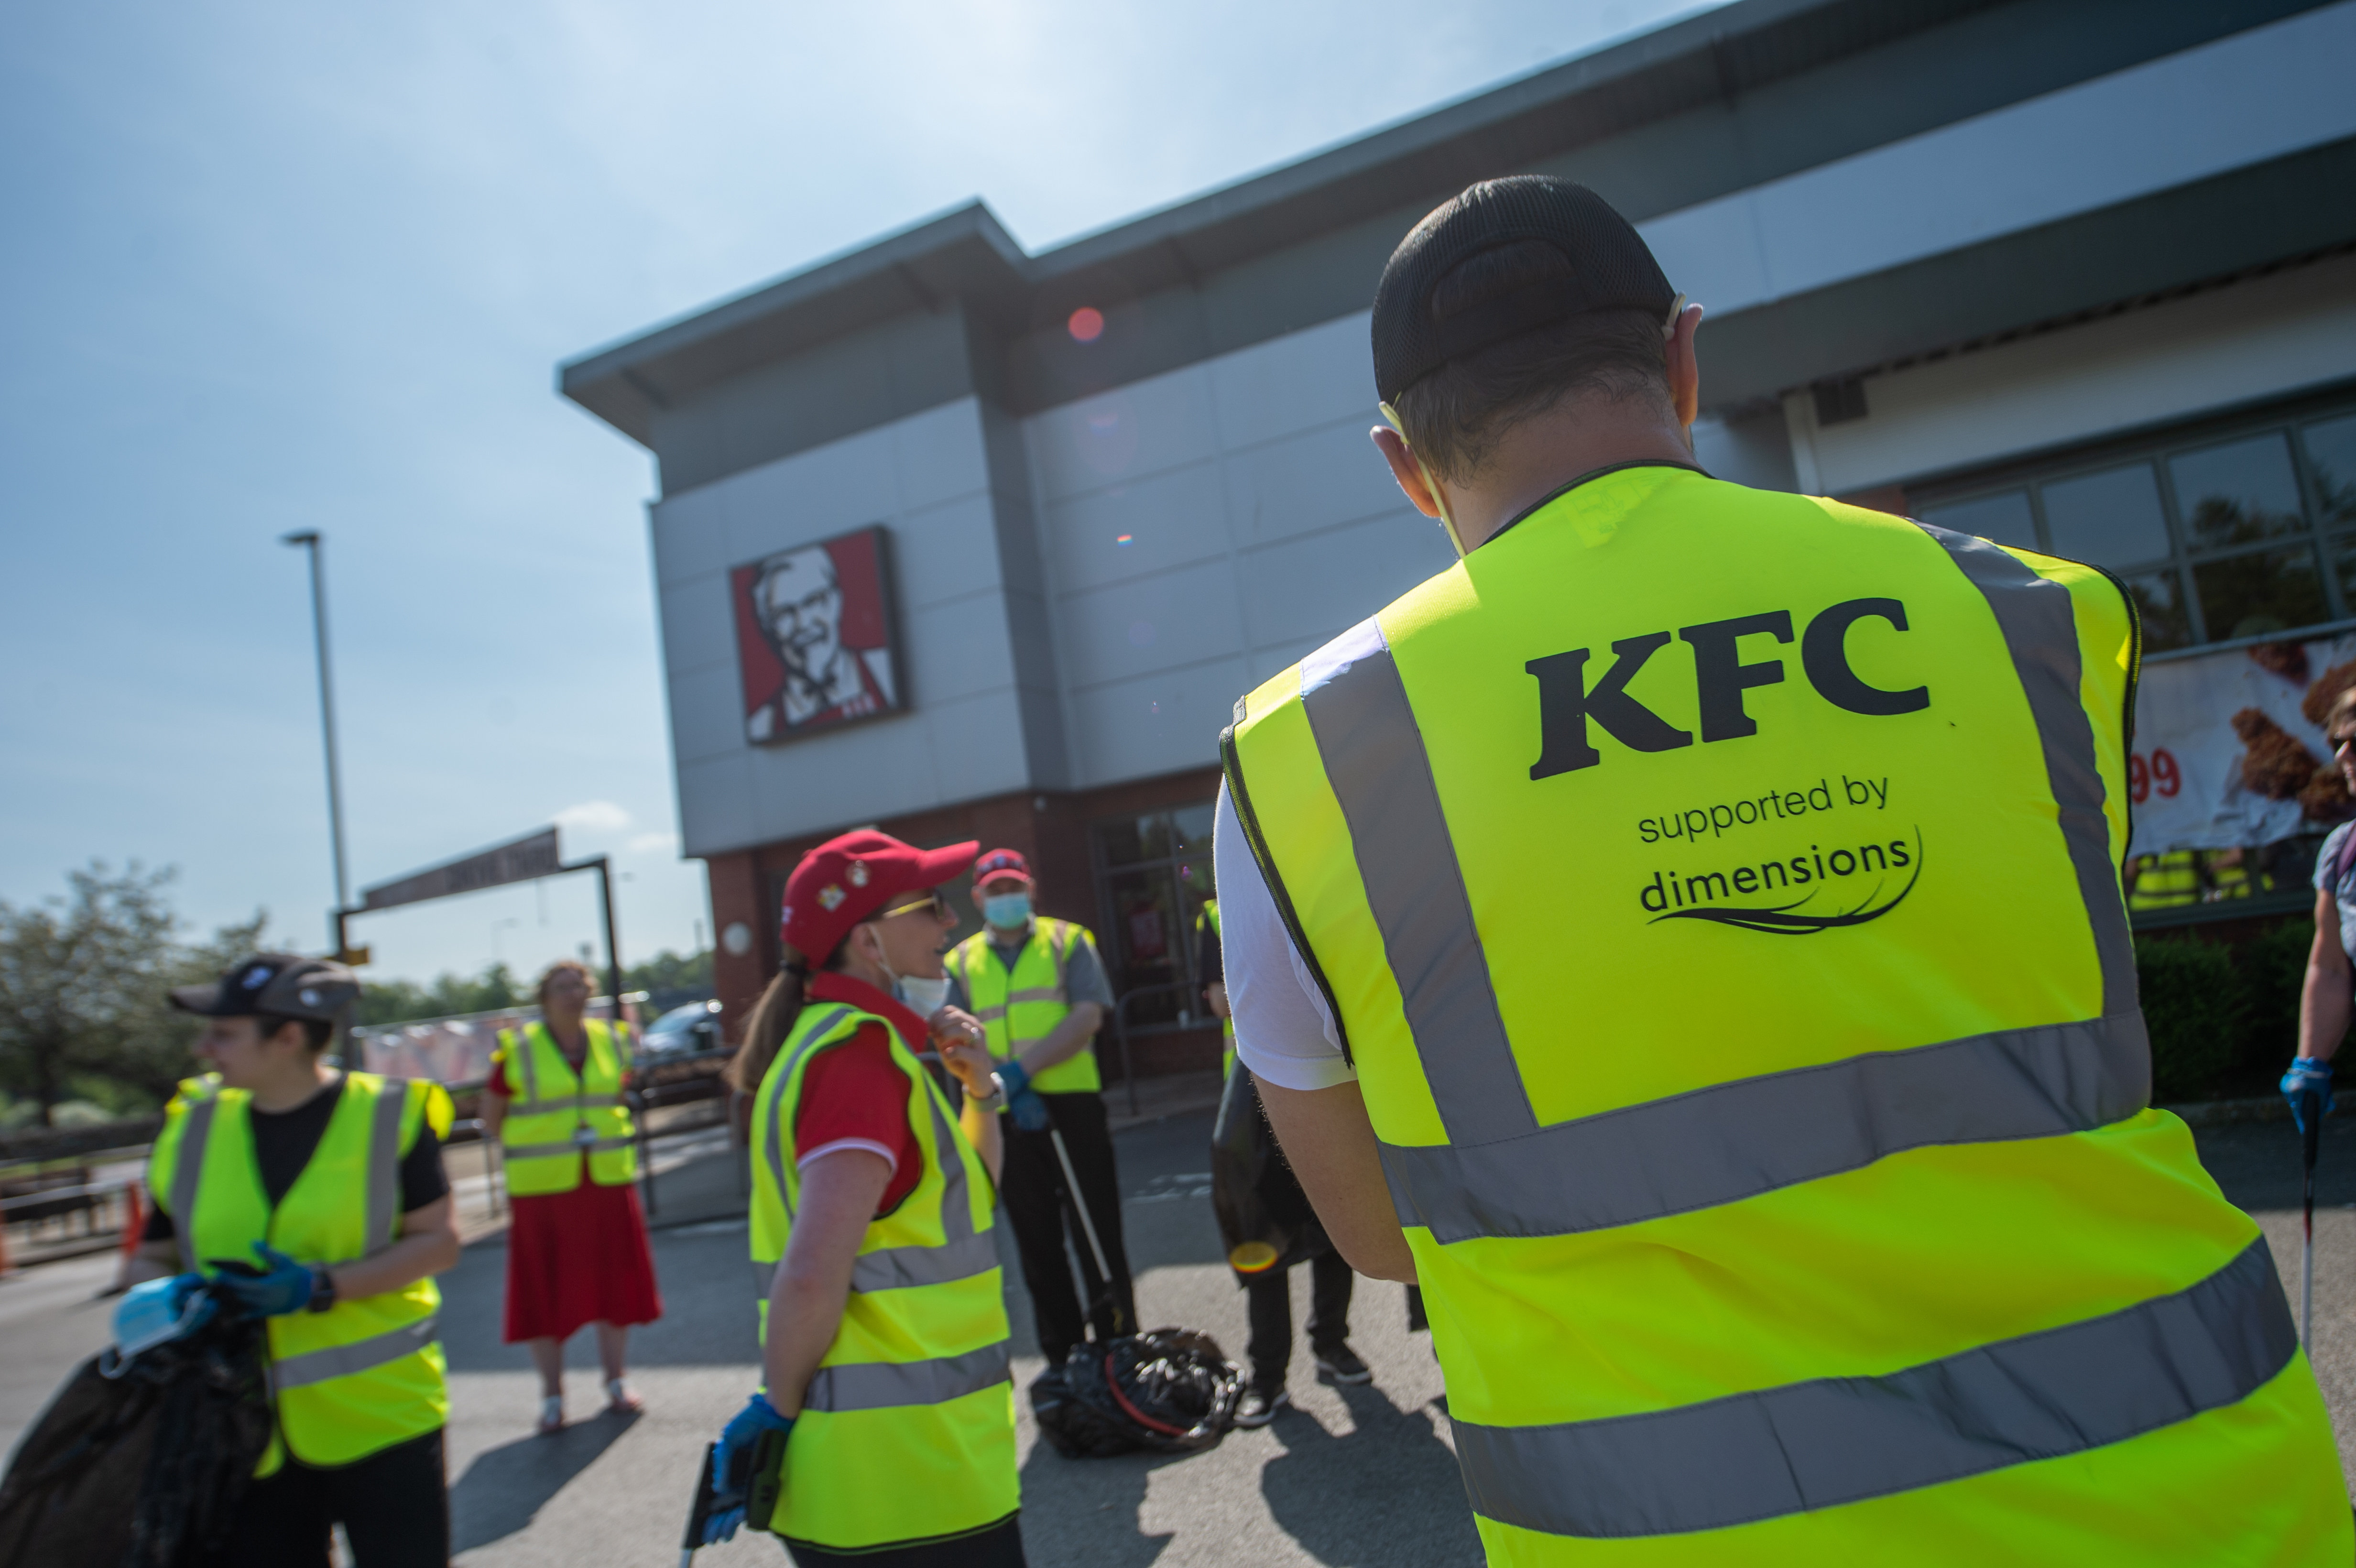 Dimensions supports KFC's #GBSpringClean Campaign